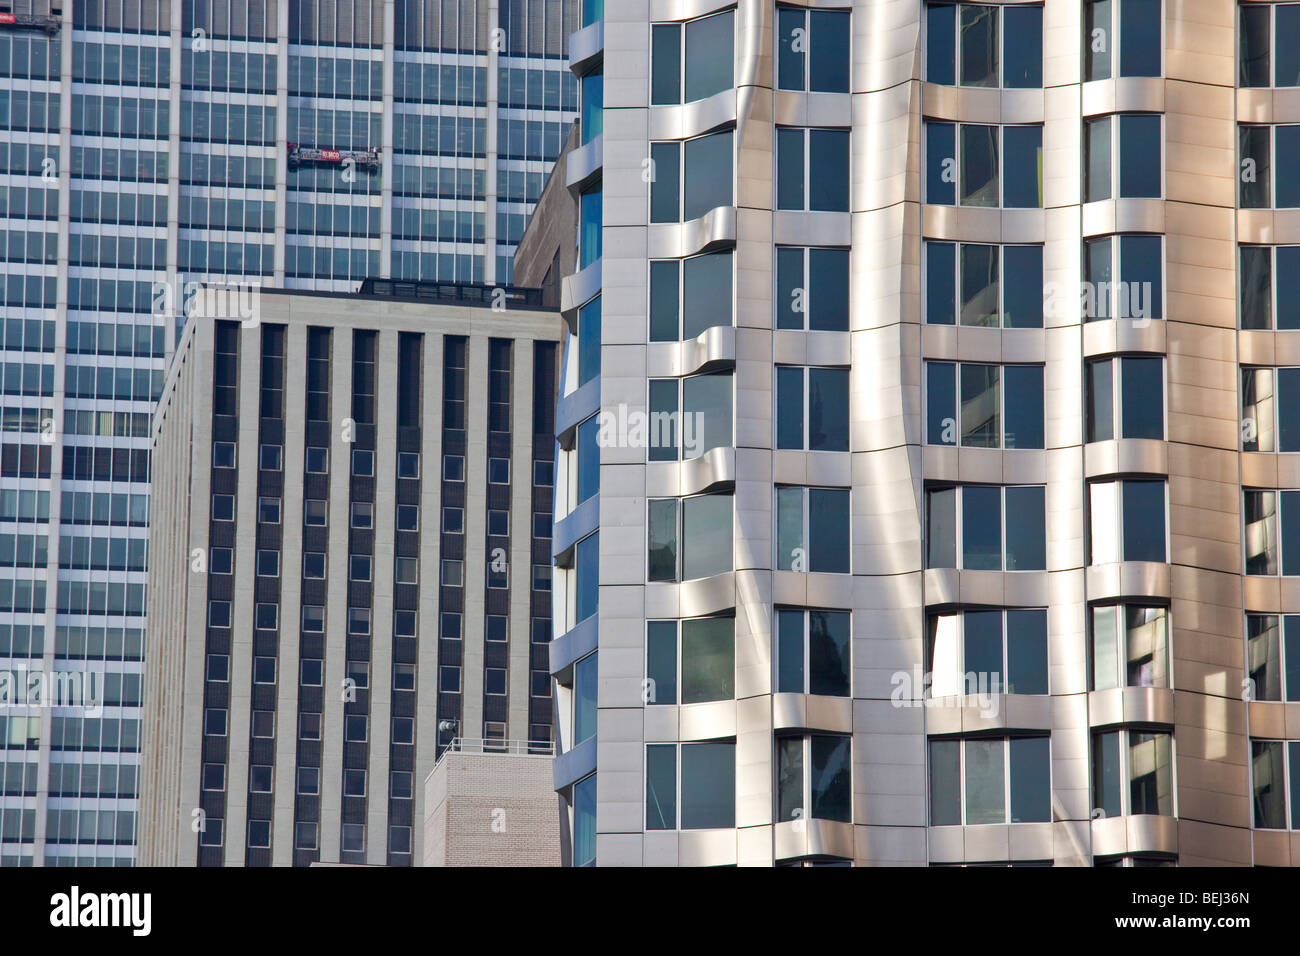 Beekman Tower Frank Gehry Apartment Building in Manhattan in New York City Stockbild